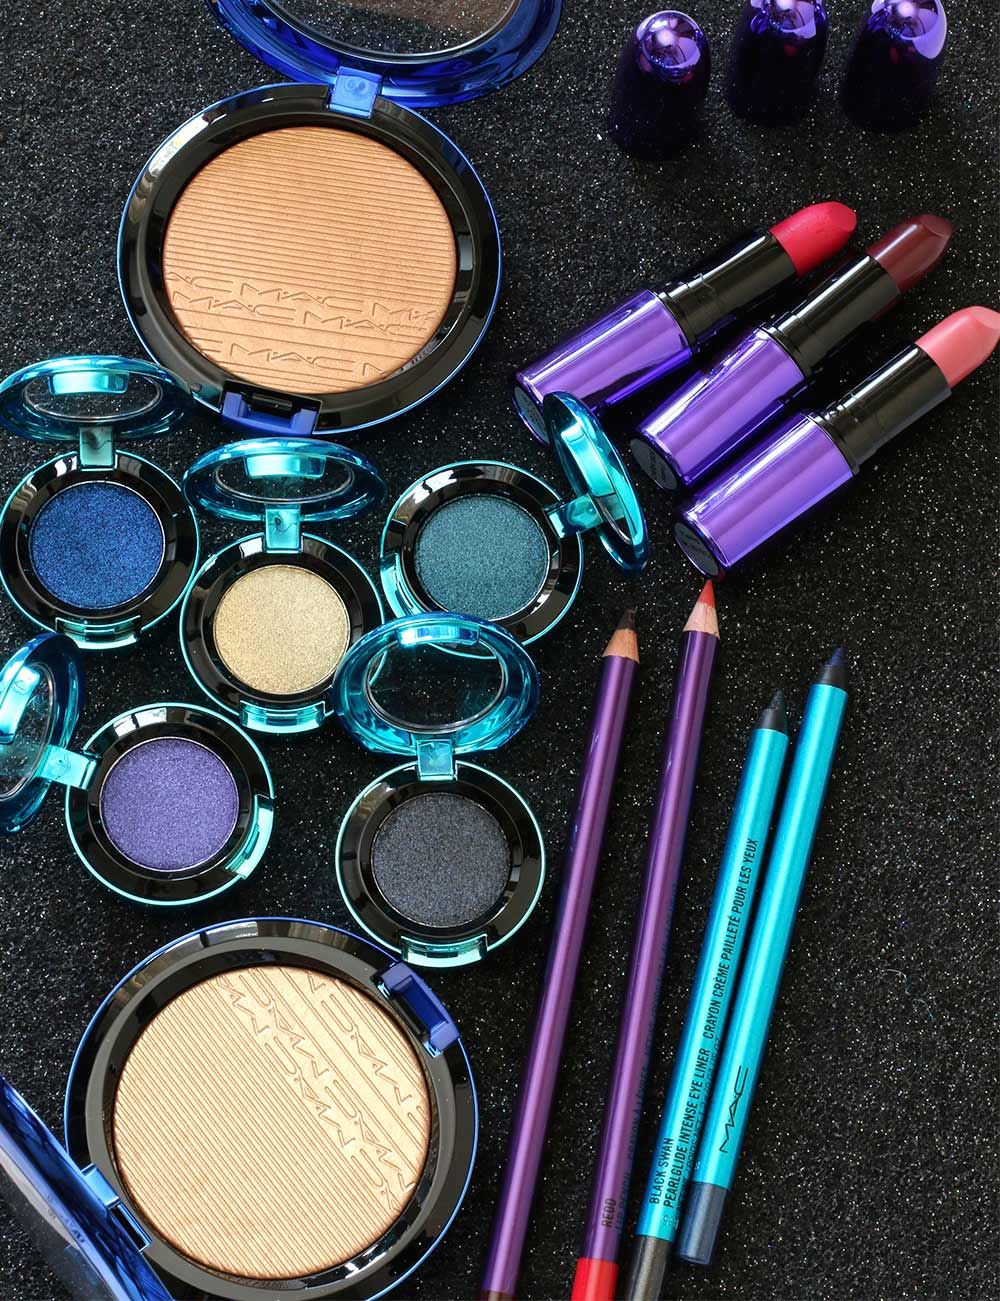 Mac Holiday 2015 Magic Of The Night Color Collection And Gift Sets Makeup And Beauty Blog